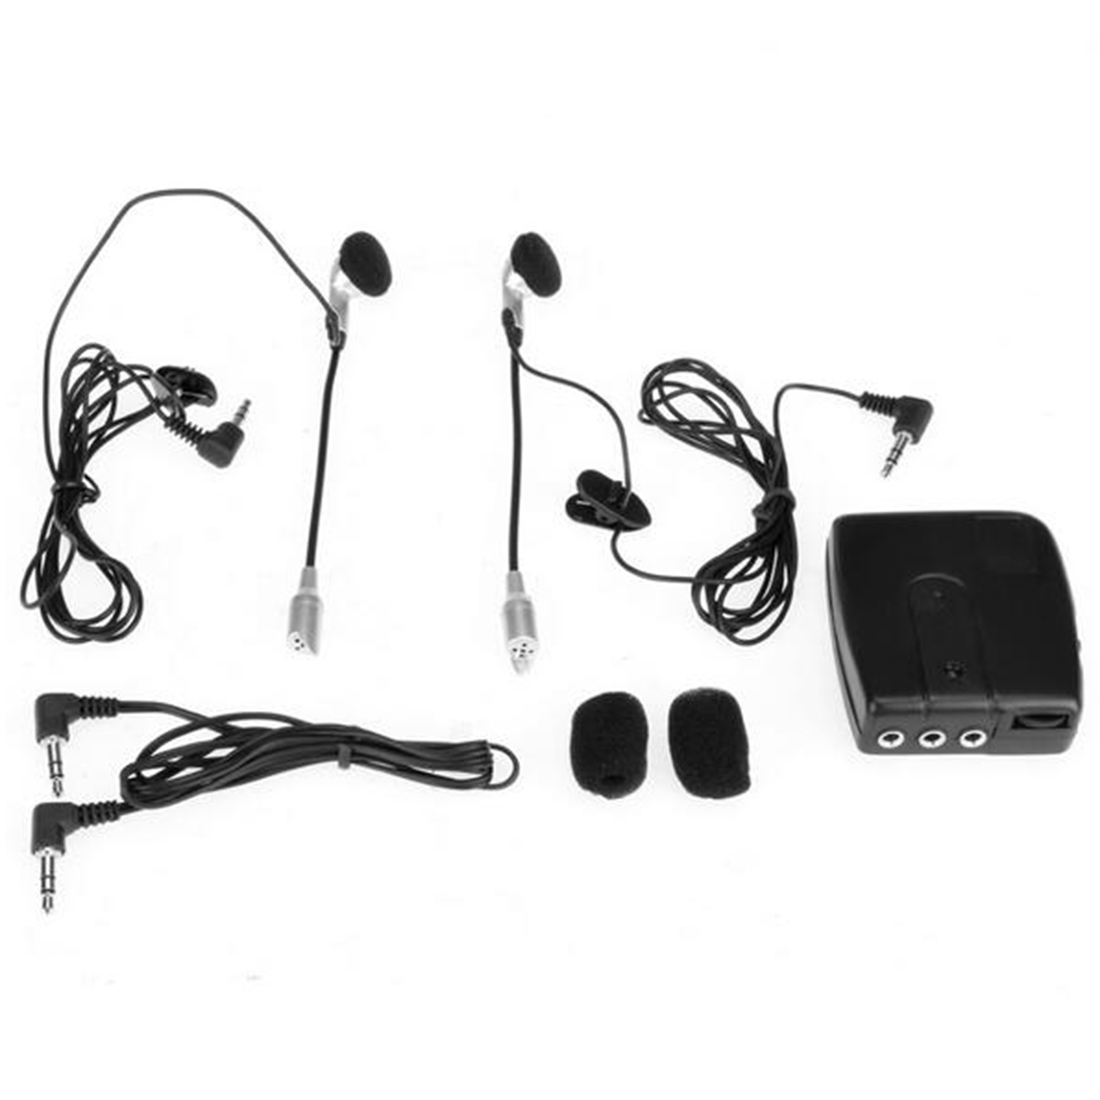 Dewtreetali 2 weg Motor Intercom Motorhelm Headset Communicatie Systeem Interphone motor Headset Oortelefoon